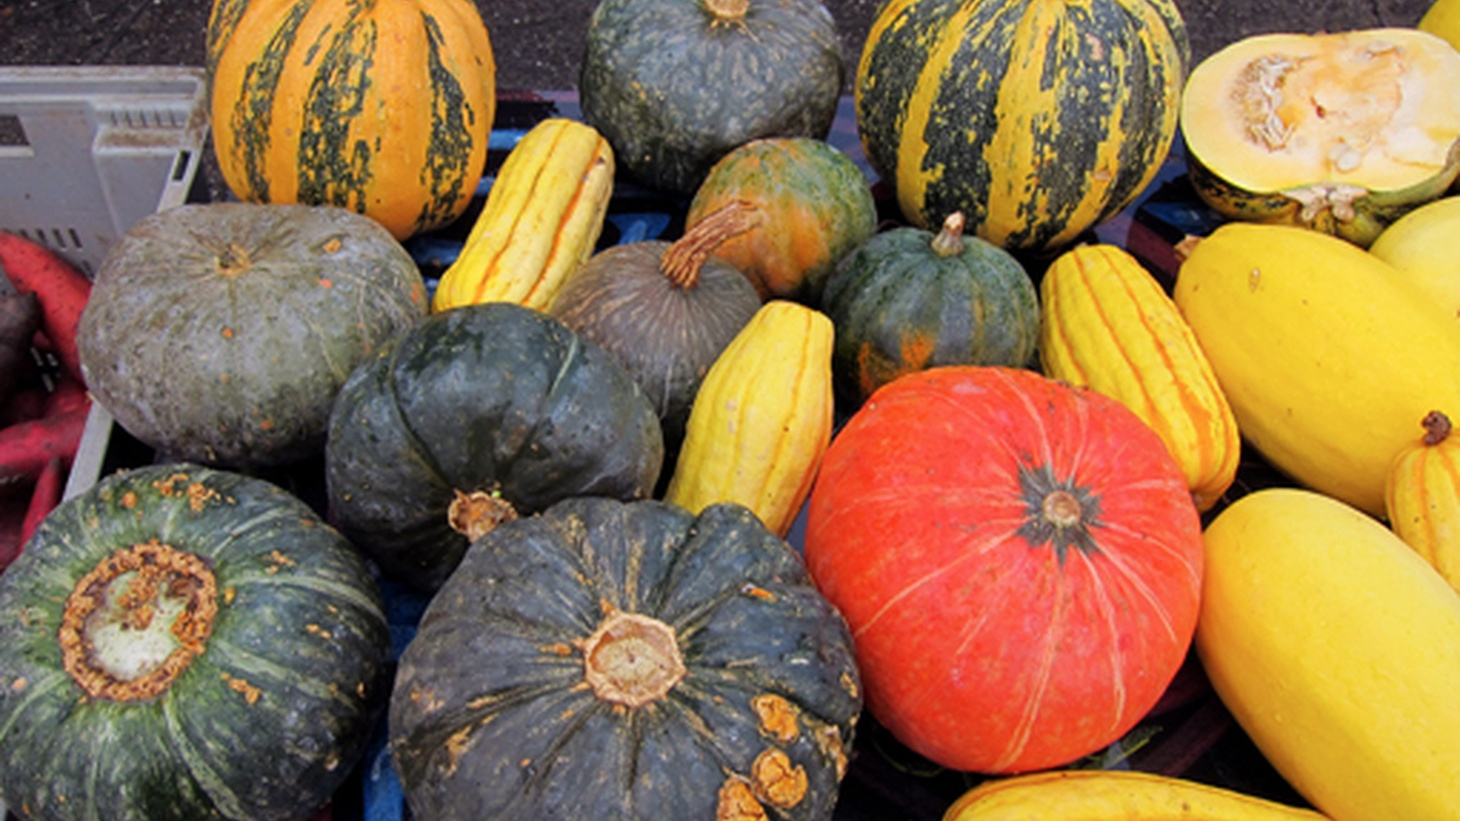 There are various different types of seasonal winter squash.